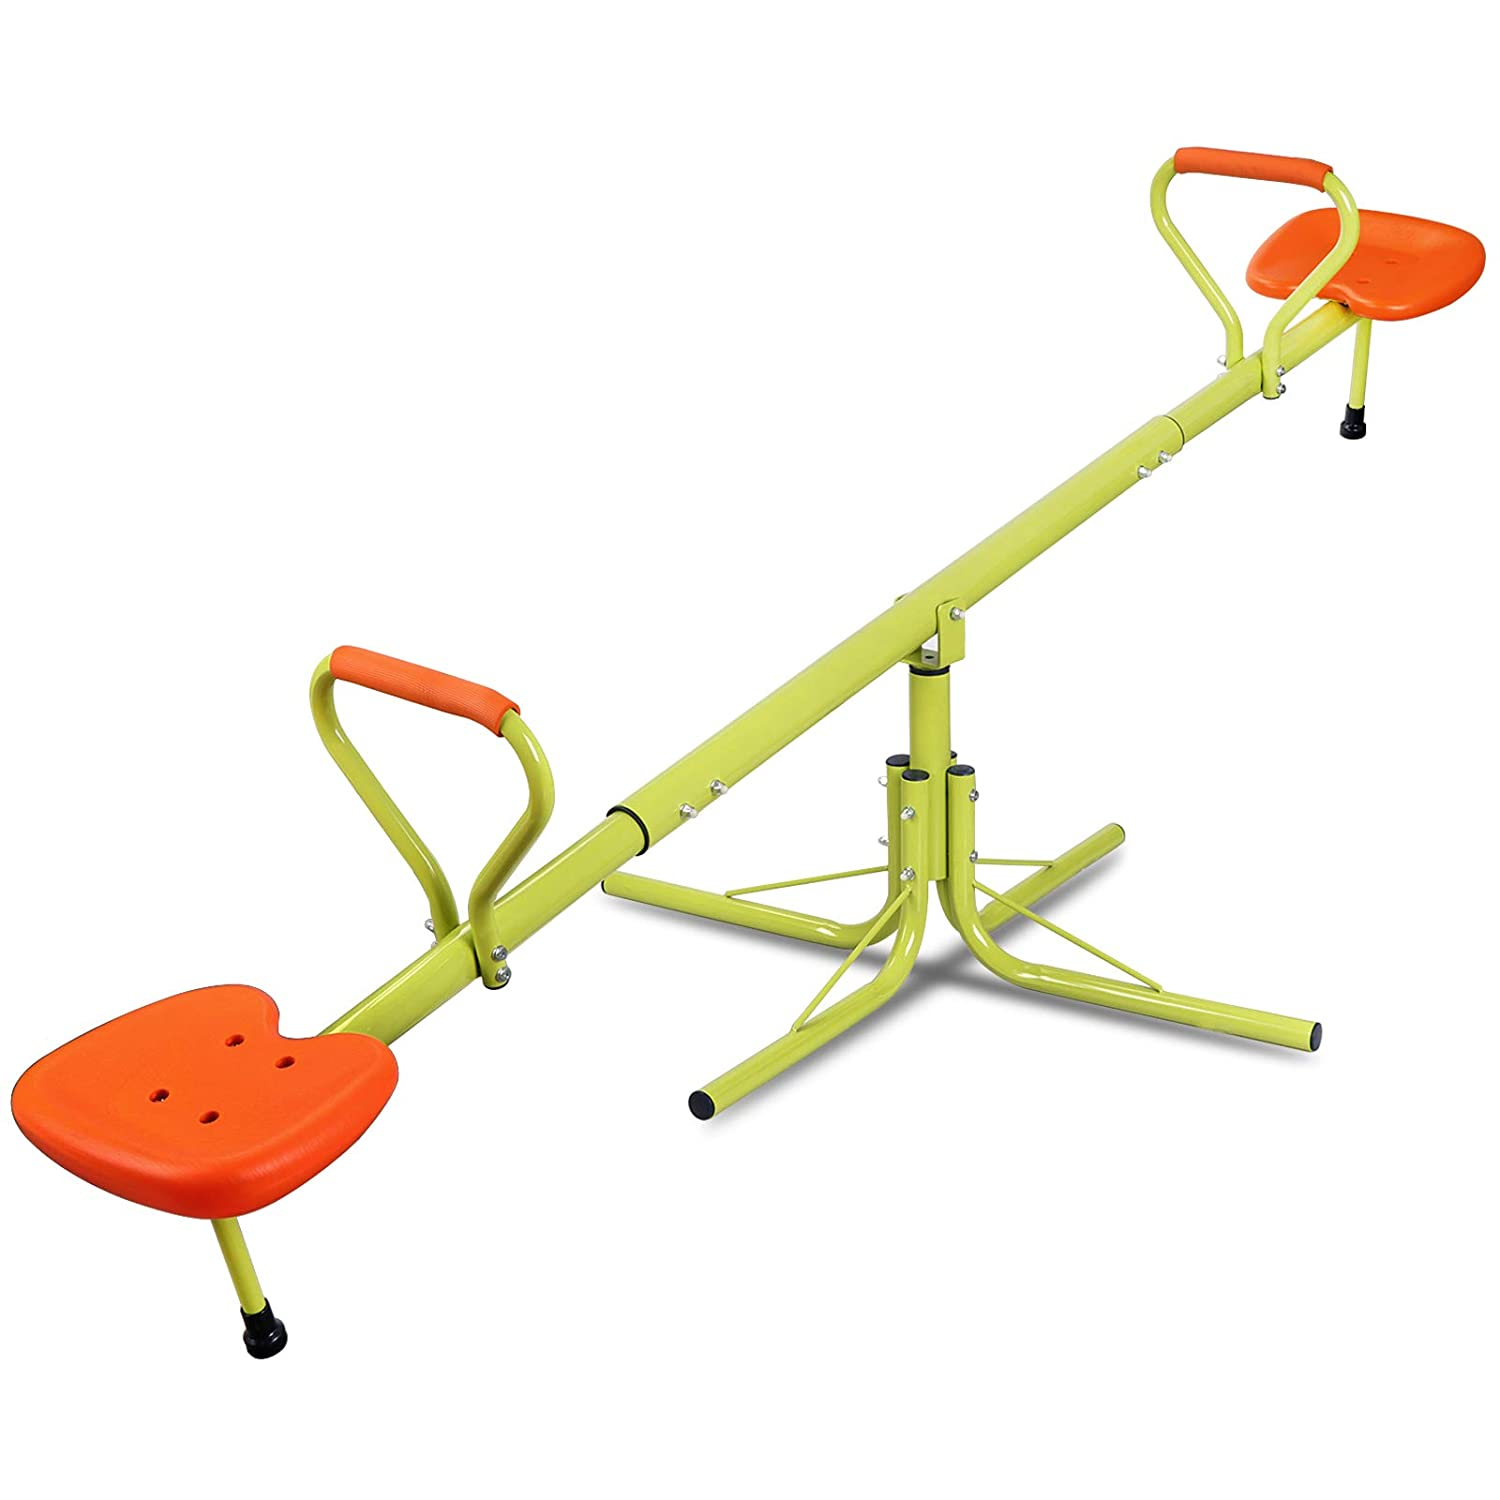 Nova Microdermabrasion Kids Seesaw Swivel Teeter-Totter Home Playground Equipment, 360 Degrees Rotating Safe, Outdoor Fun for Kids, Toddlers, Boys, Children (#1)